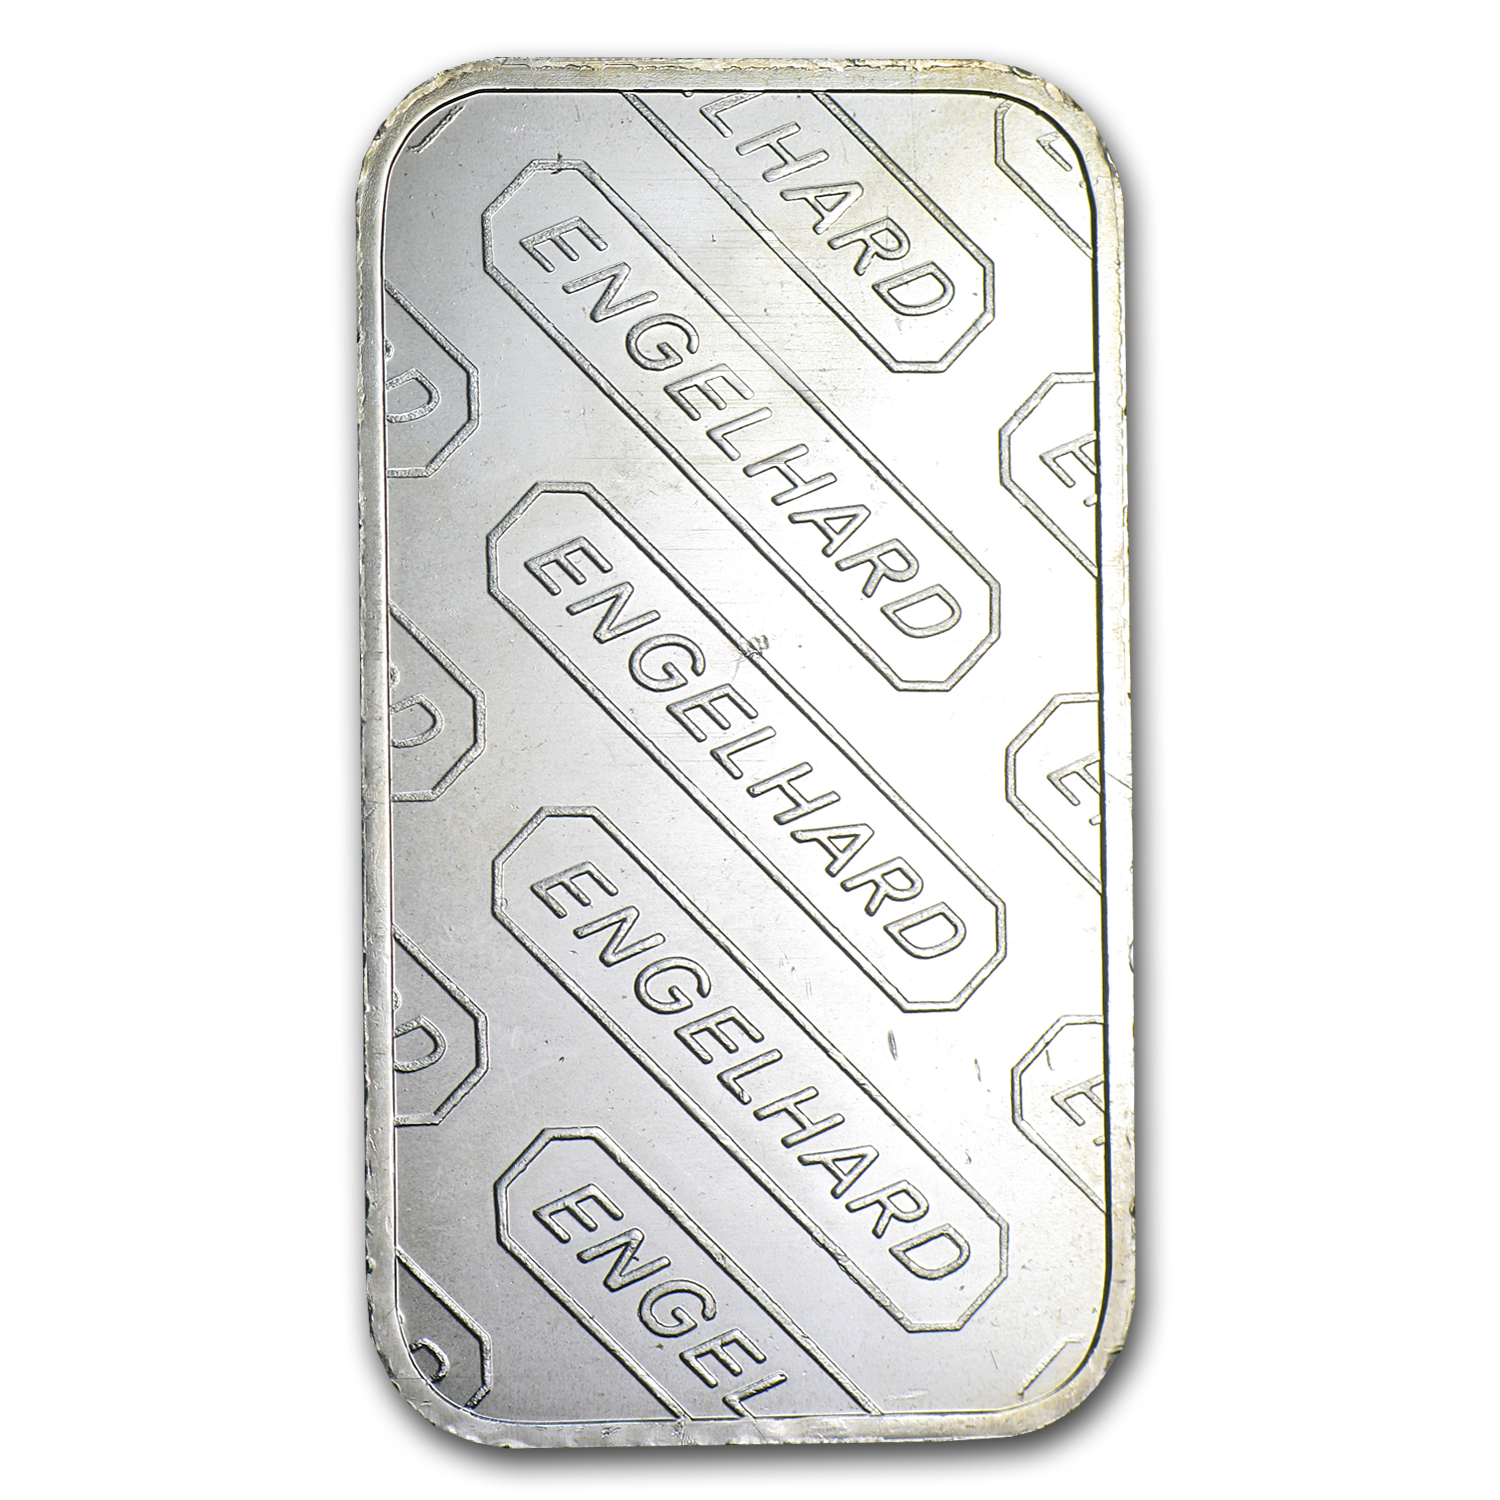 1 oz Silver Bar - Engelhard (Tall/'E' Logo)